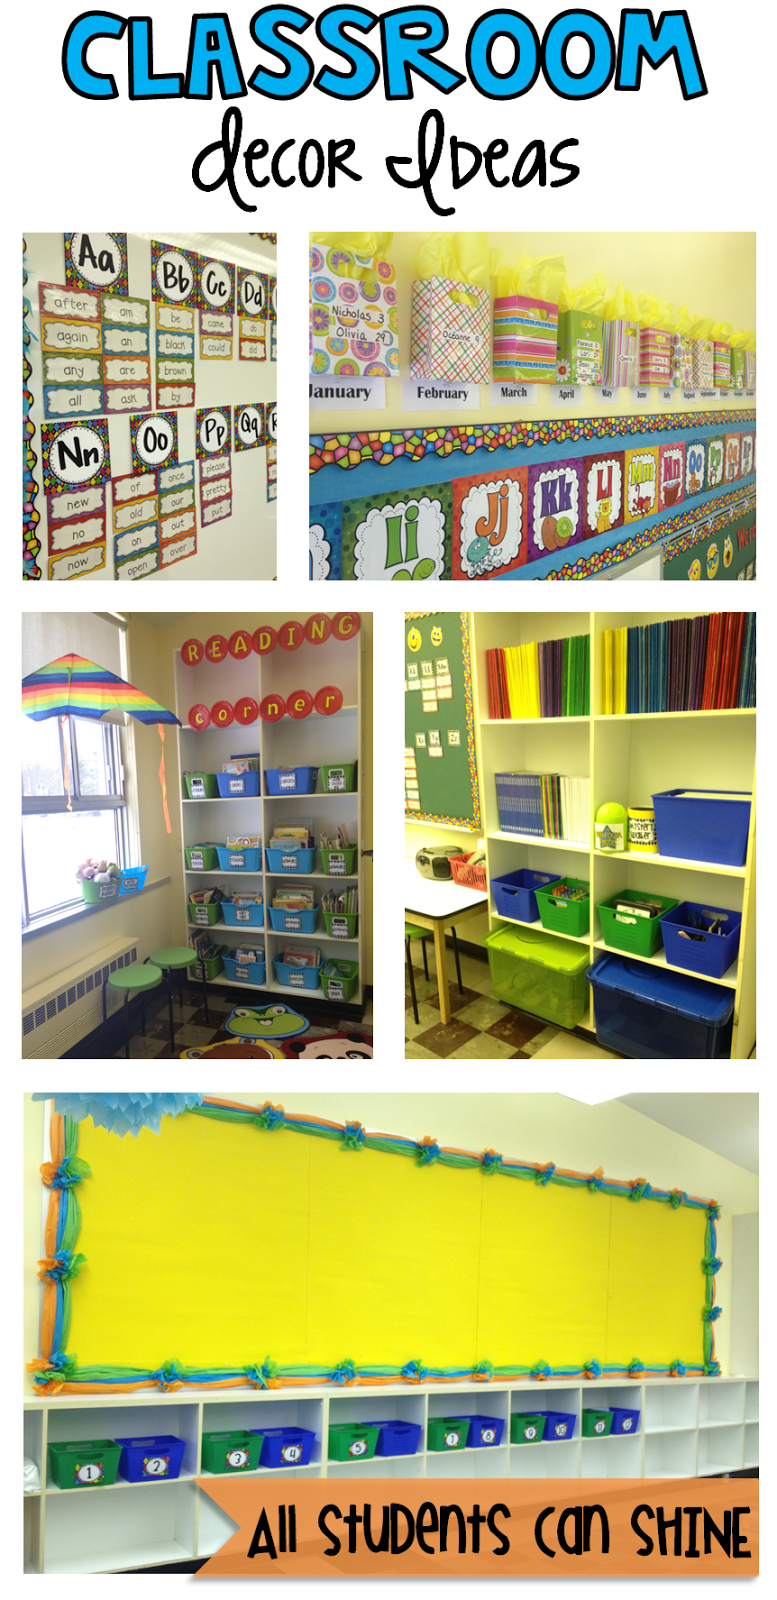 Design Ideas For Classroom : Summer classroom ideas home design and decor reviews